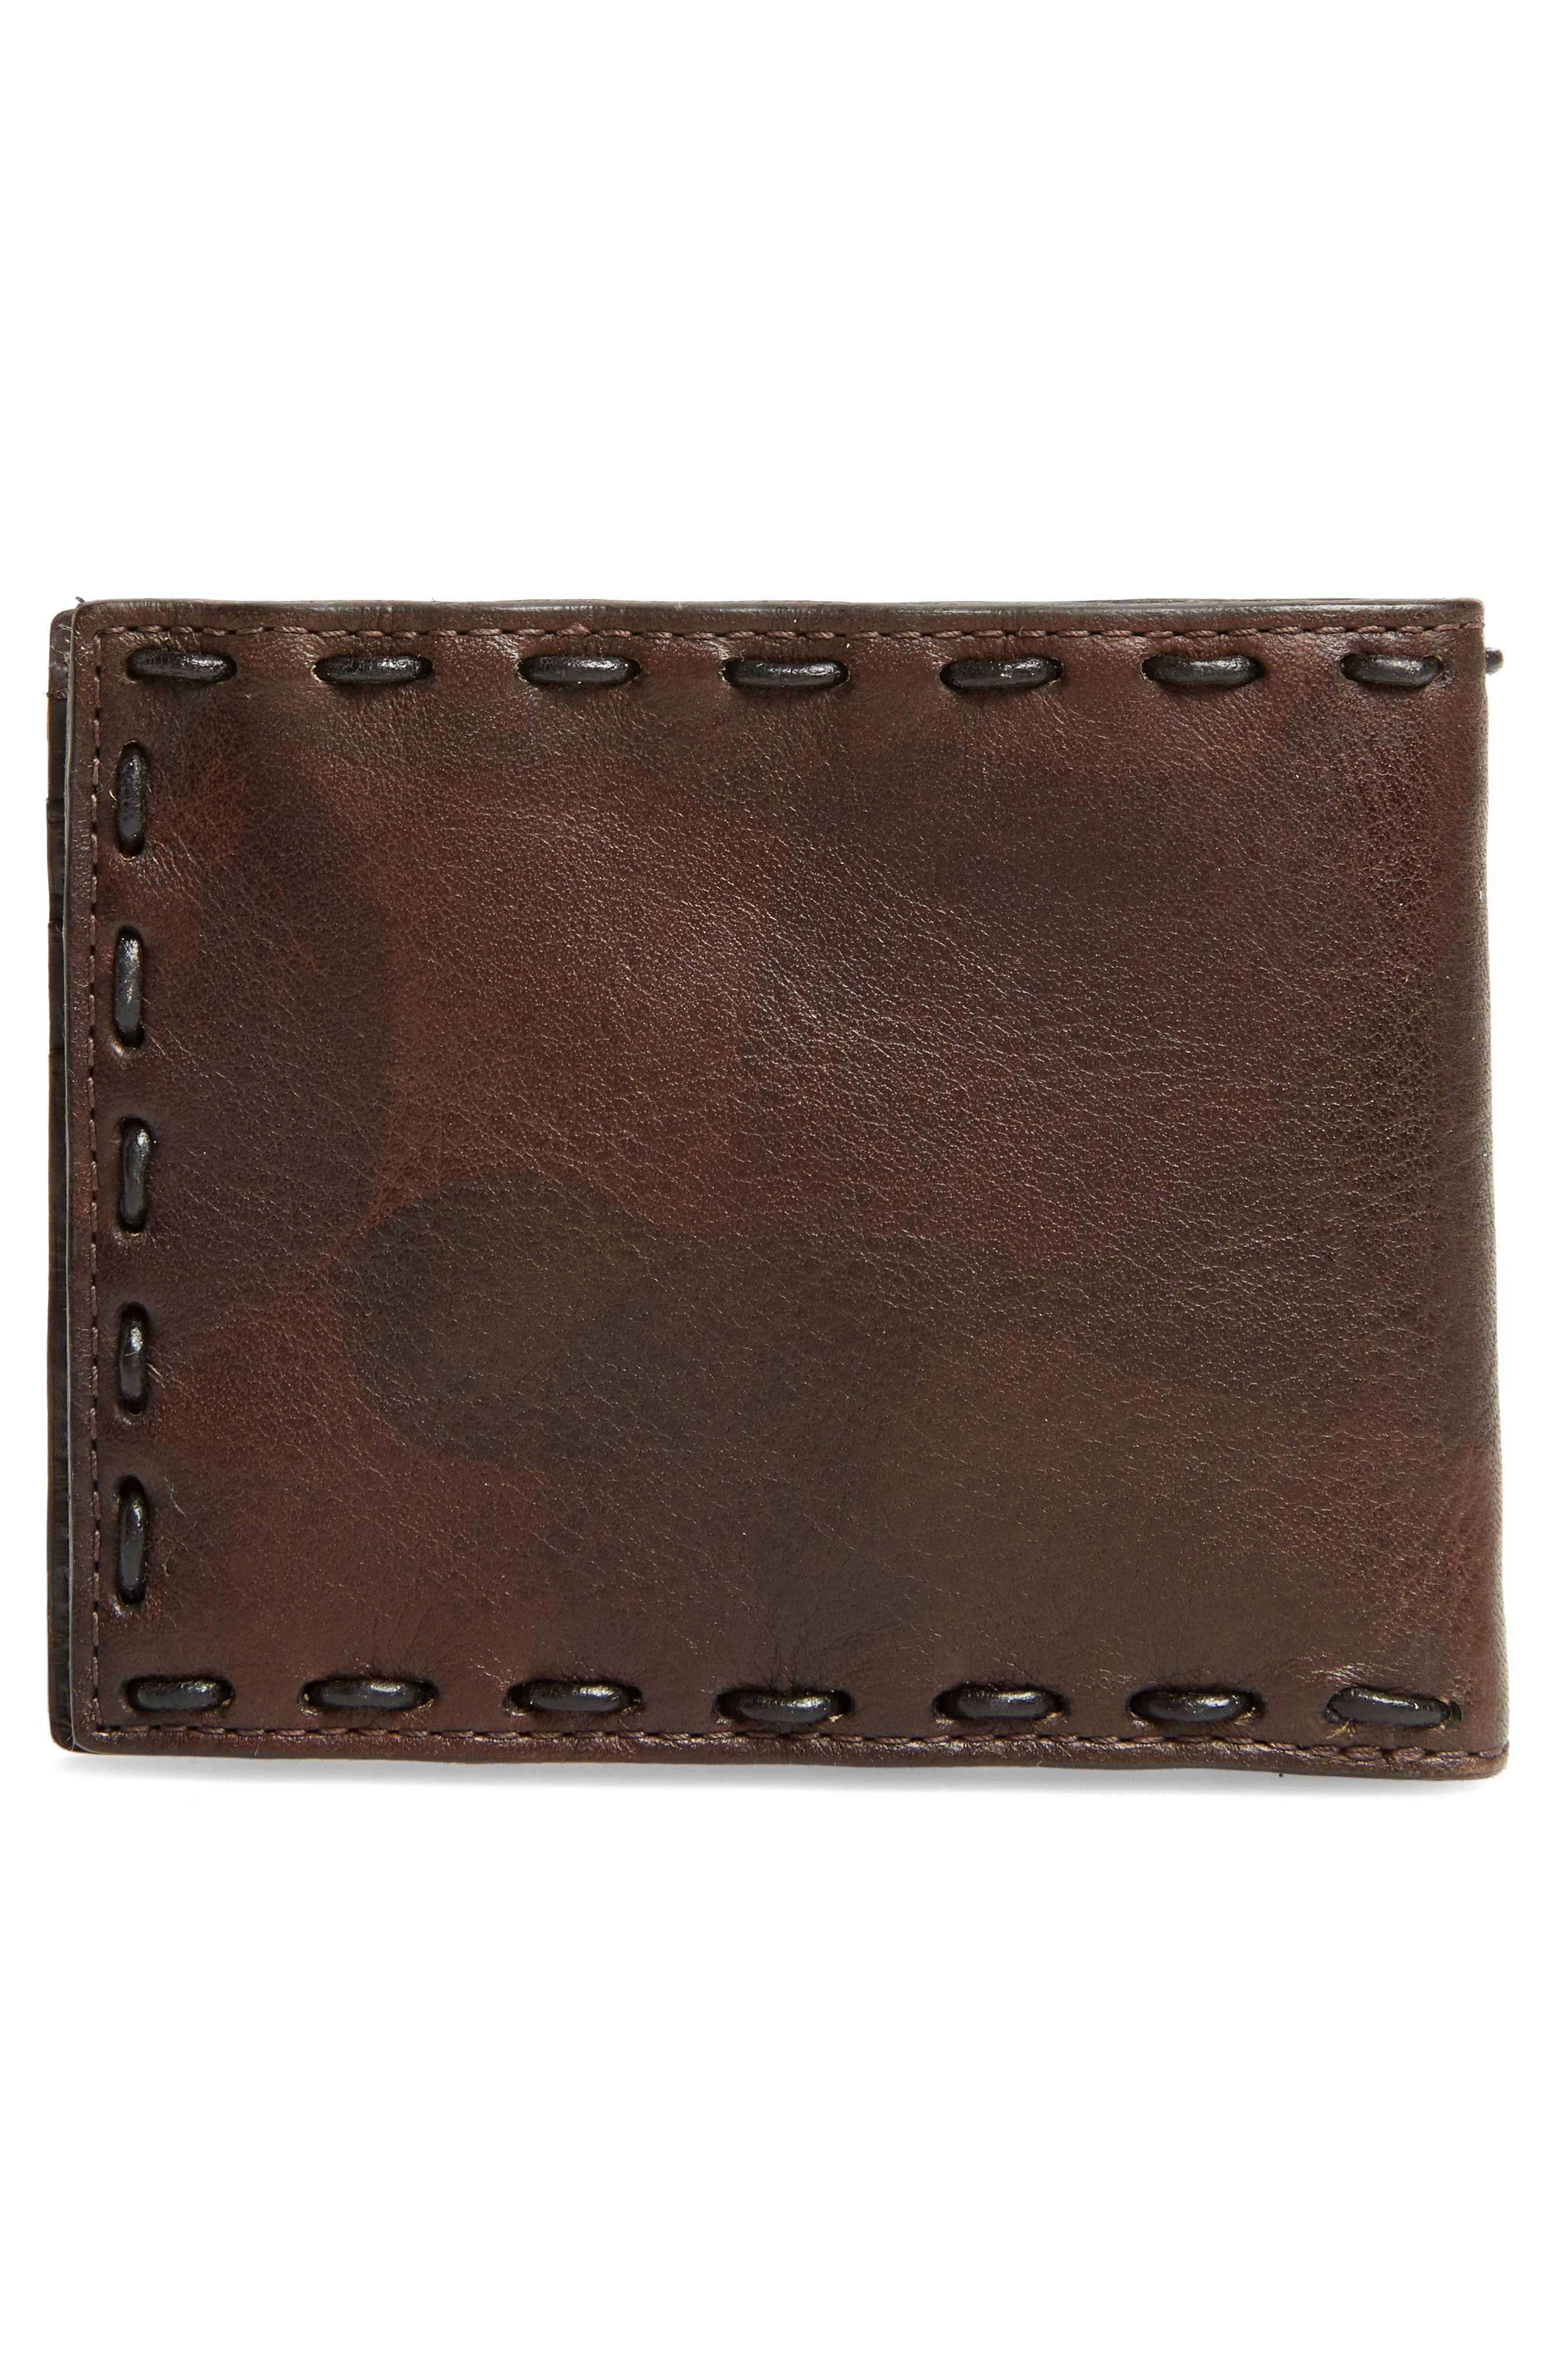 Marble Pickstitched Leather Wallet,                             Alternate thumbnail 3, color,                             206